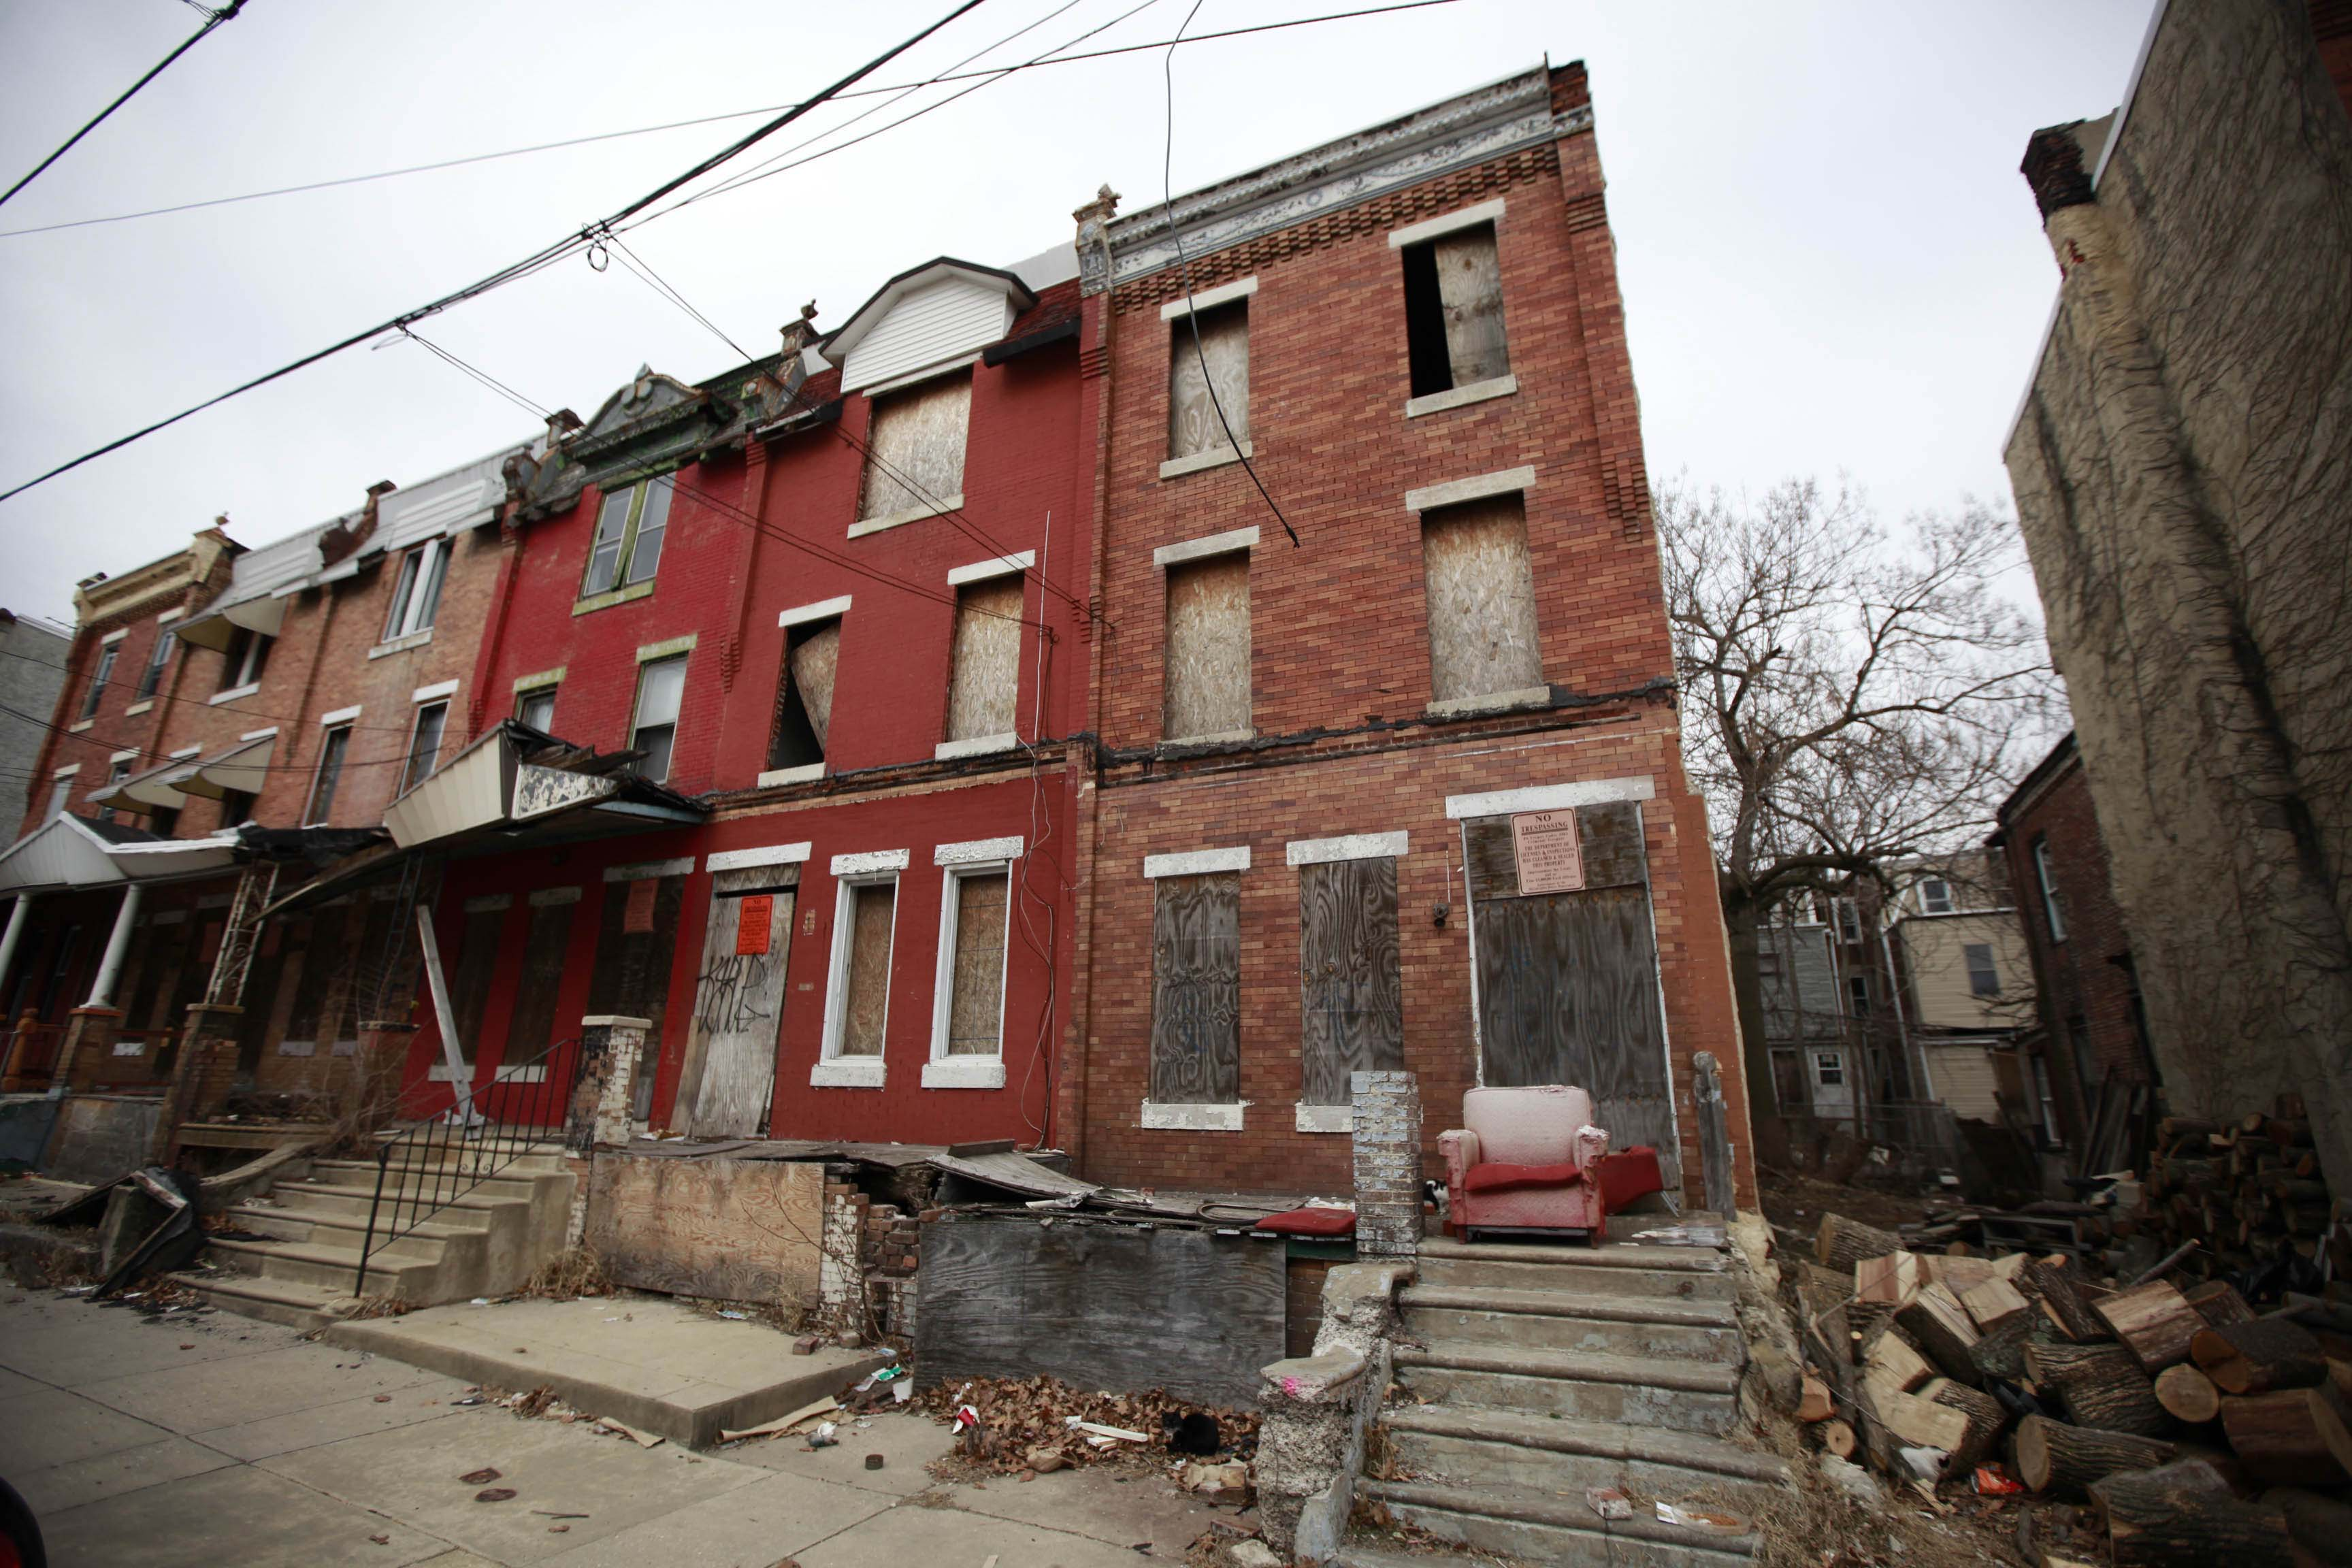 3831 Cambridge, property traced to Antoine Gardiner and photographed February 22, 2013. (David Swanson / Inquirer Staff Photographer)